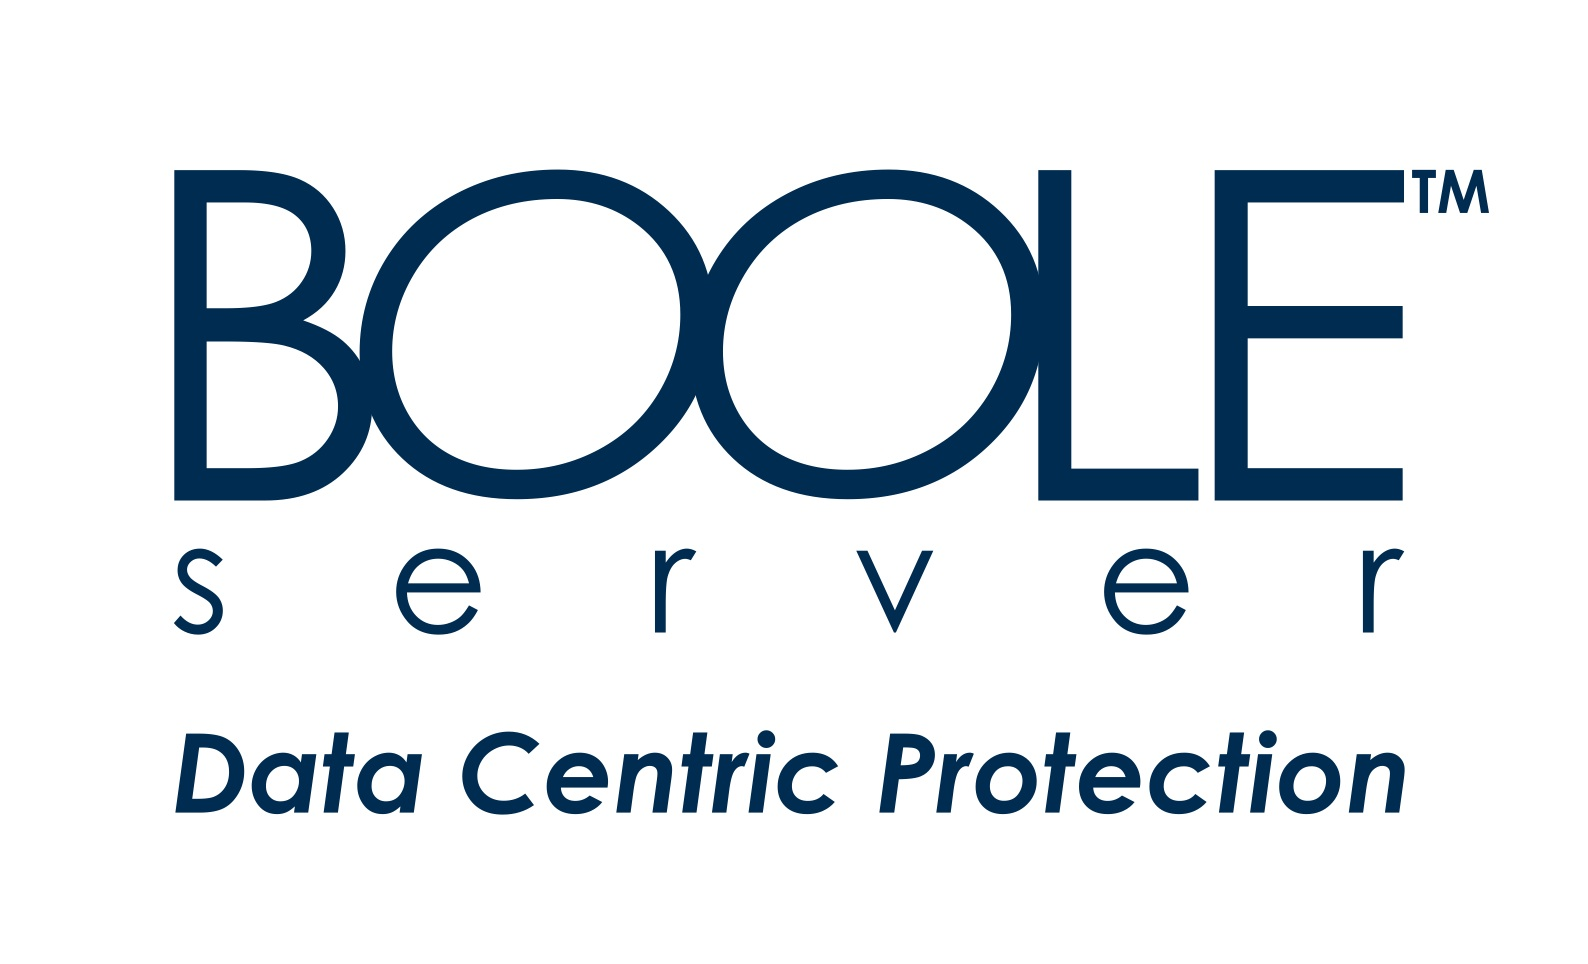 Boole Server - Data Centric Protection